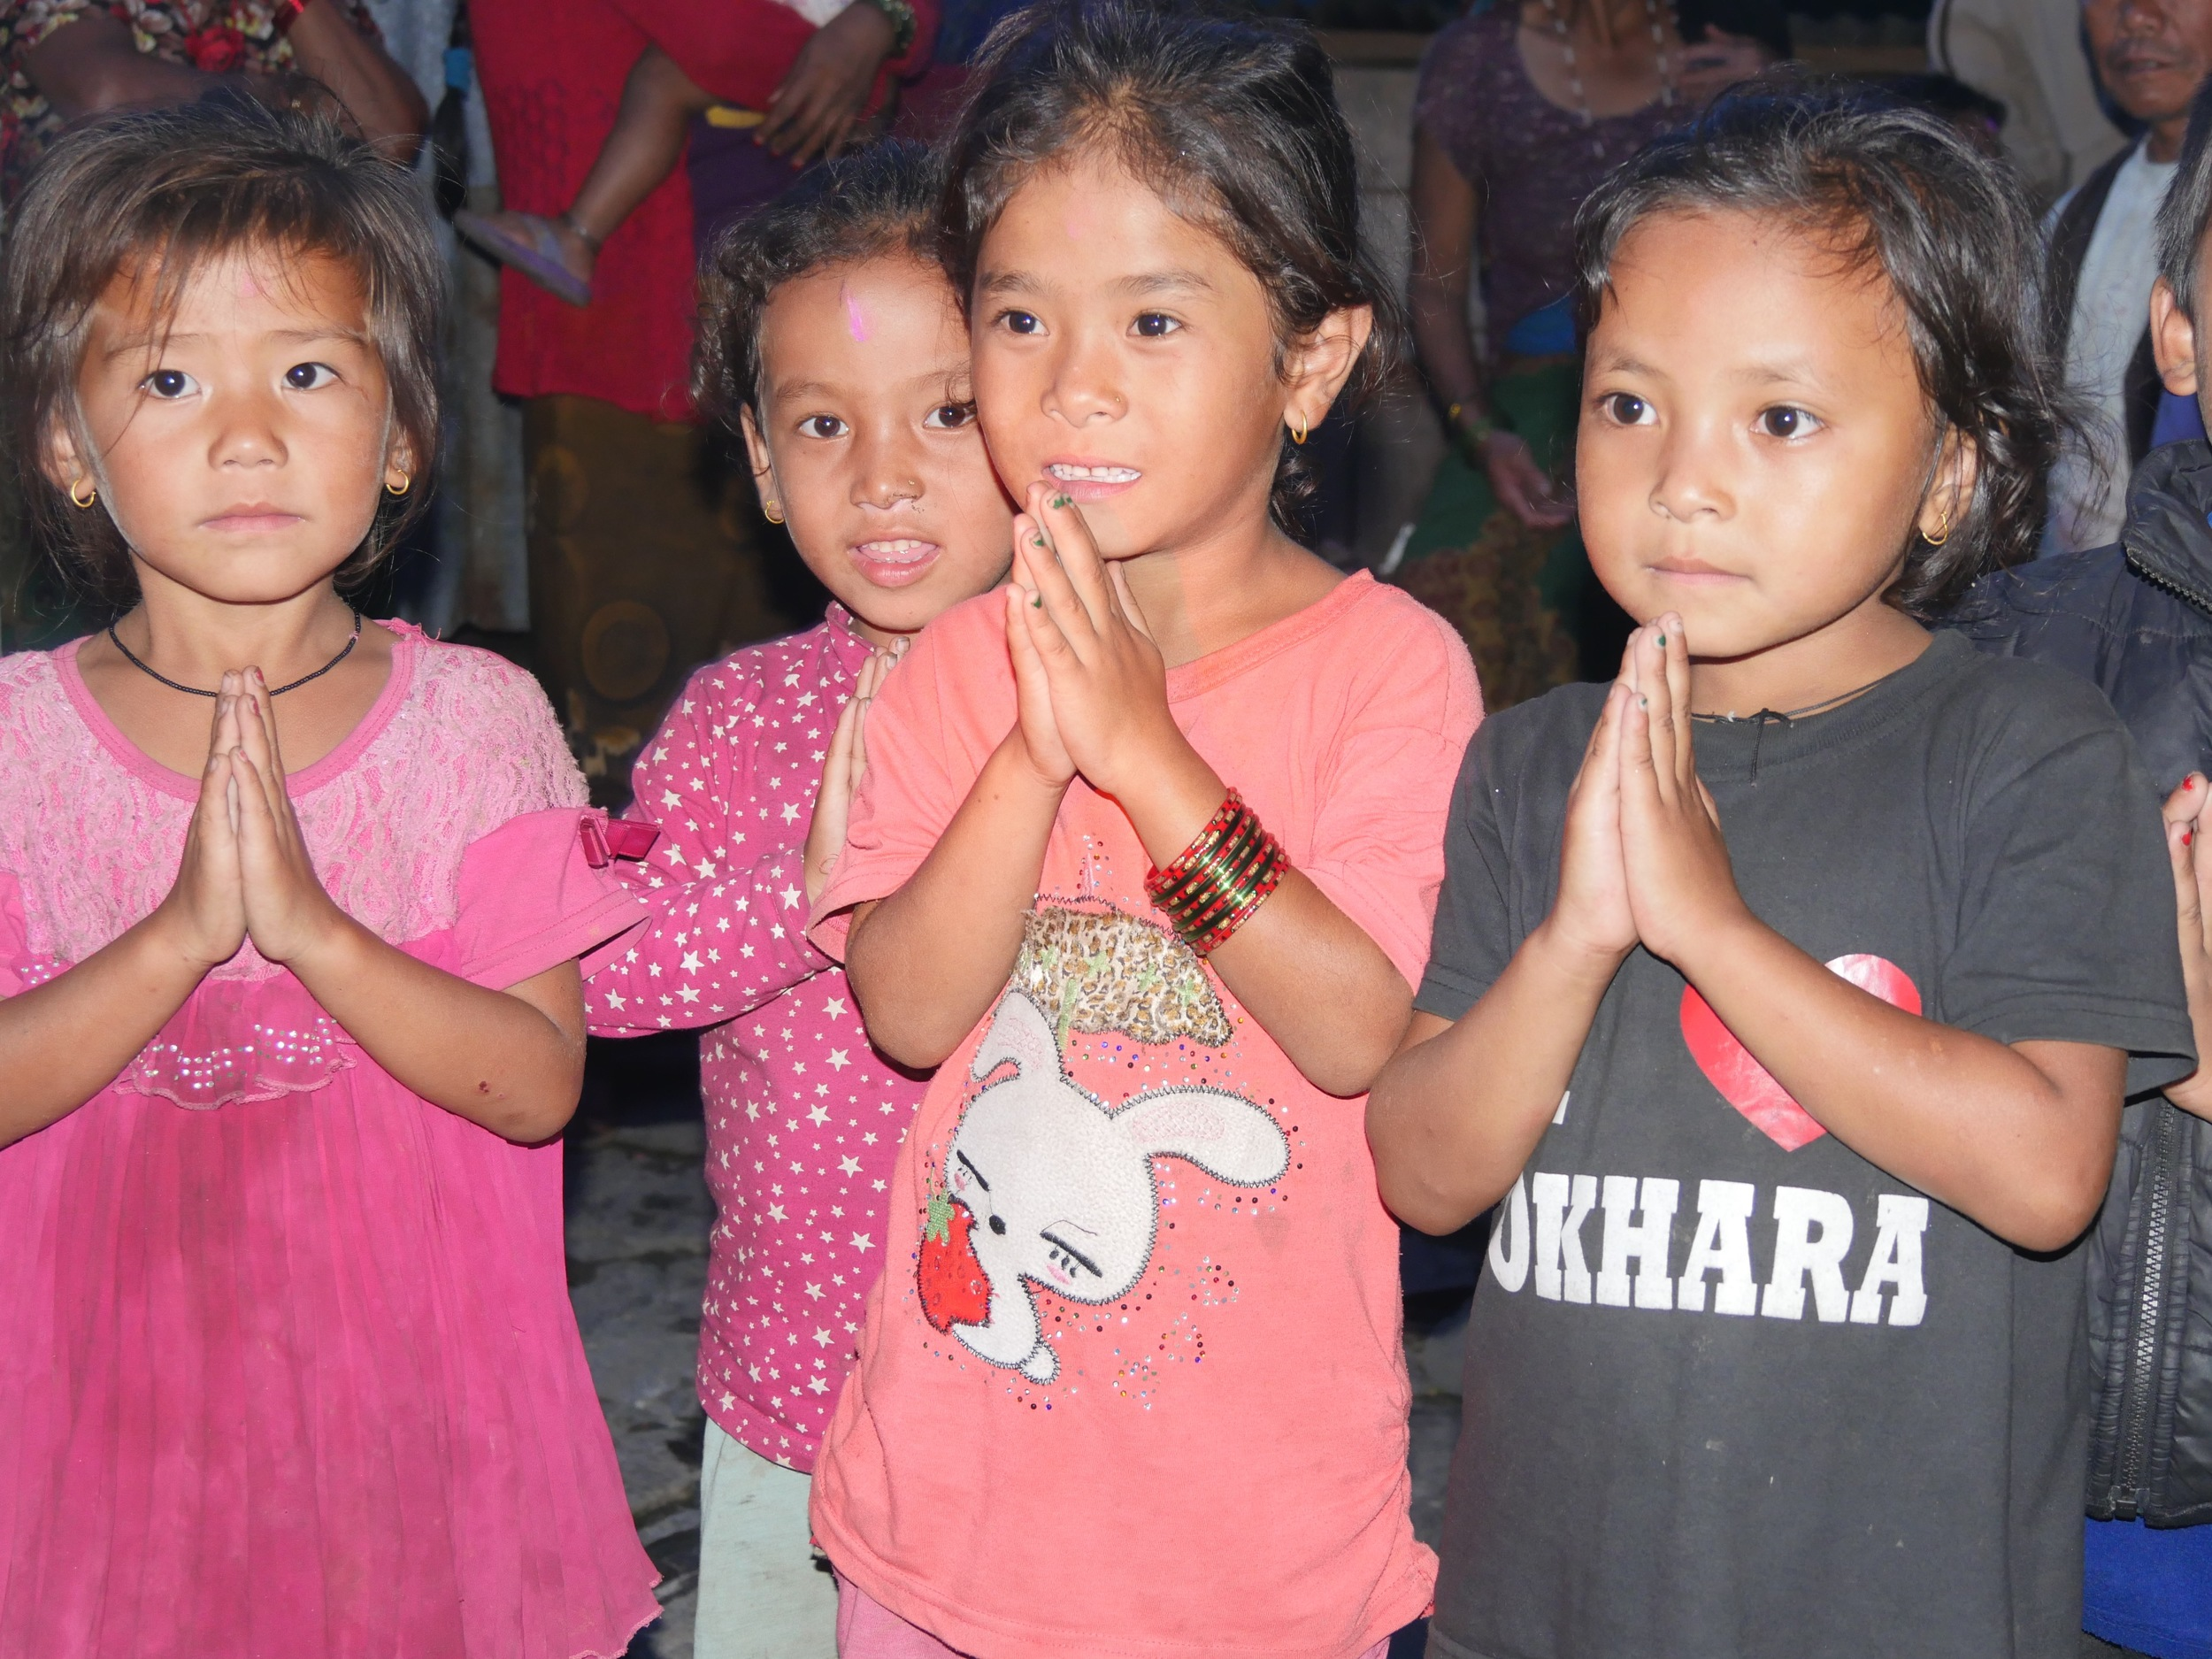 A warm 'Namaste' welcome from the local children